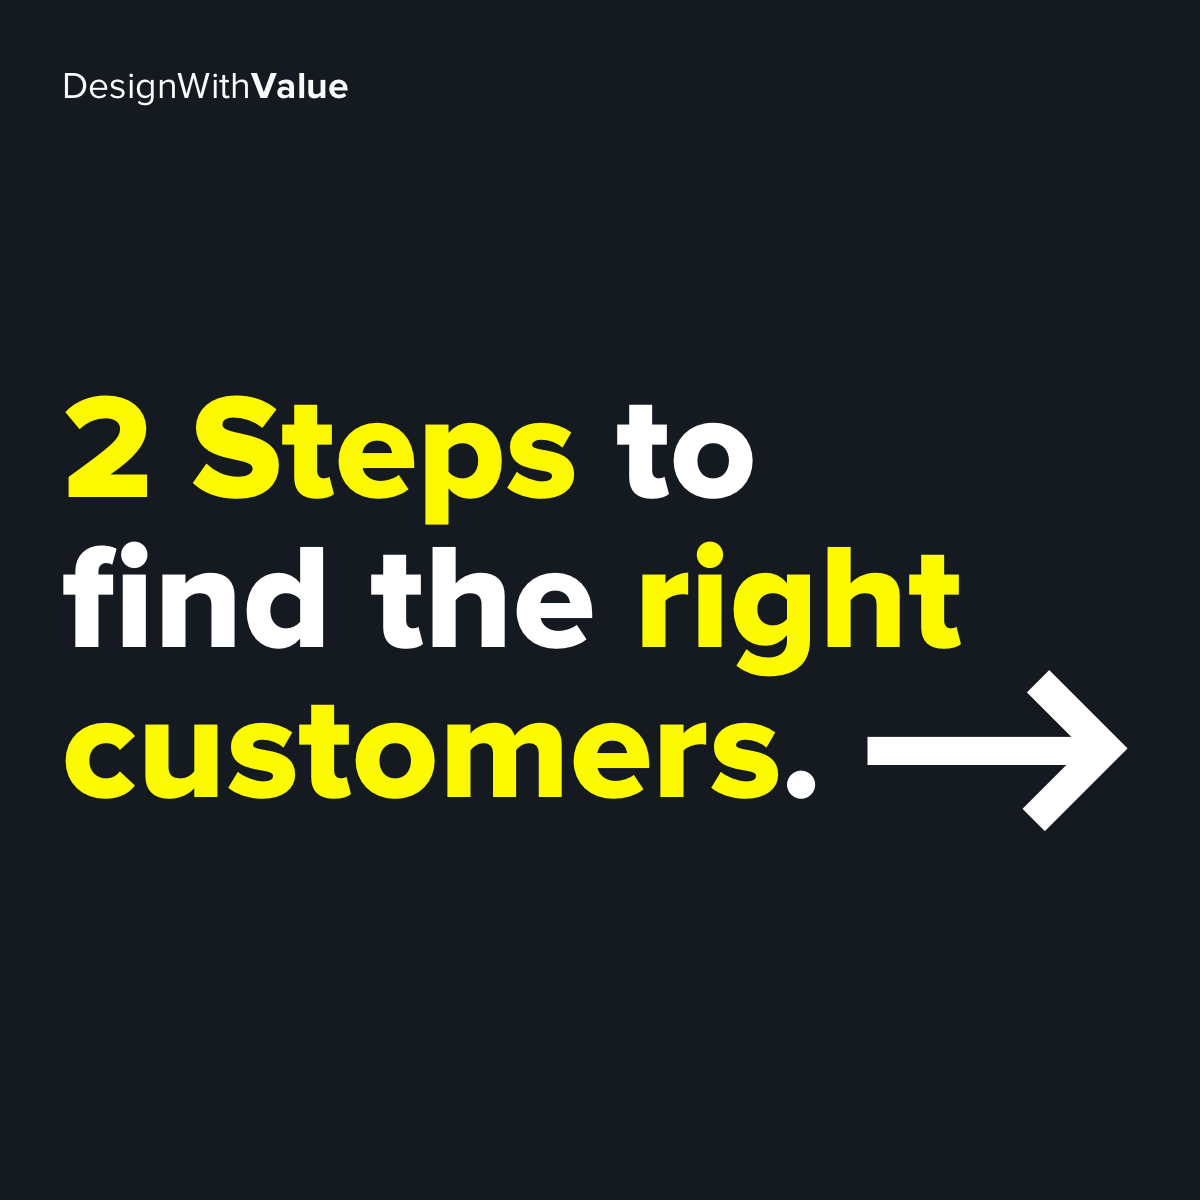 2 steps to find the right customers